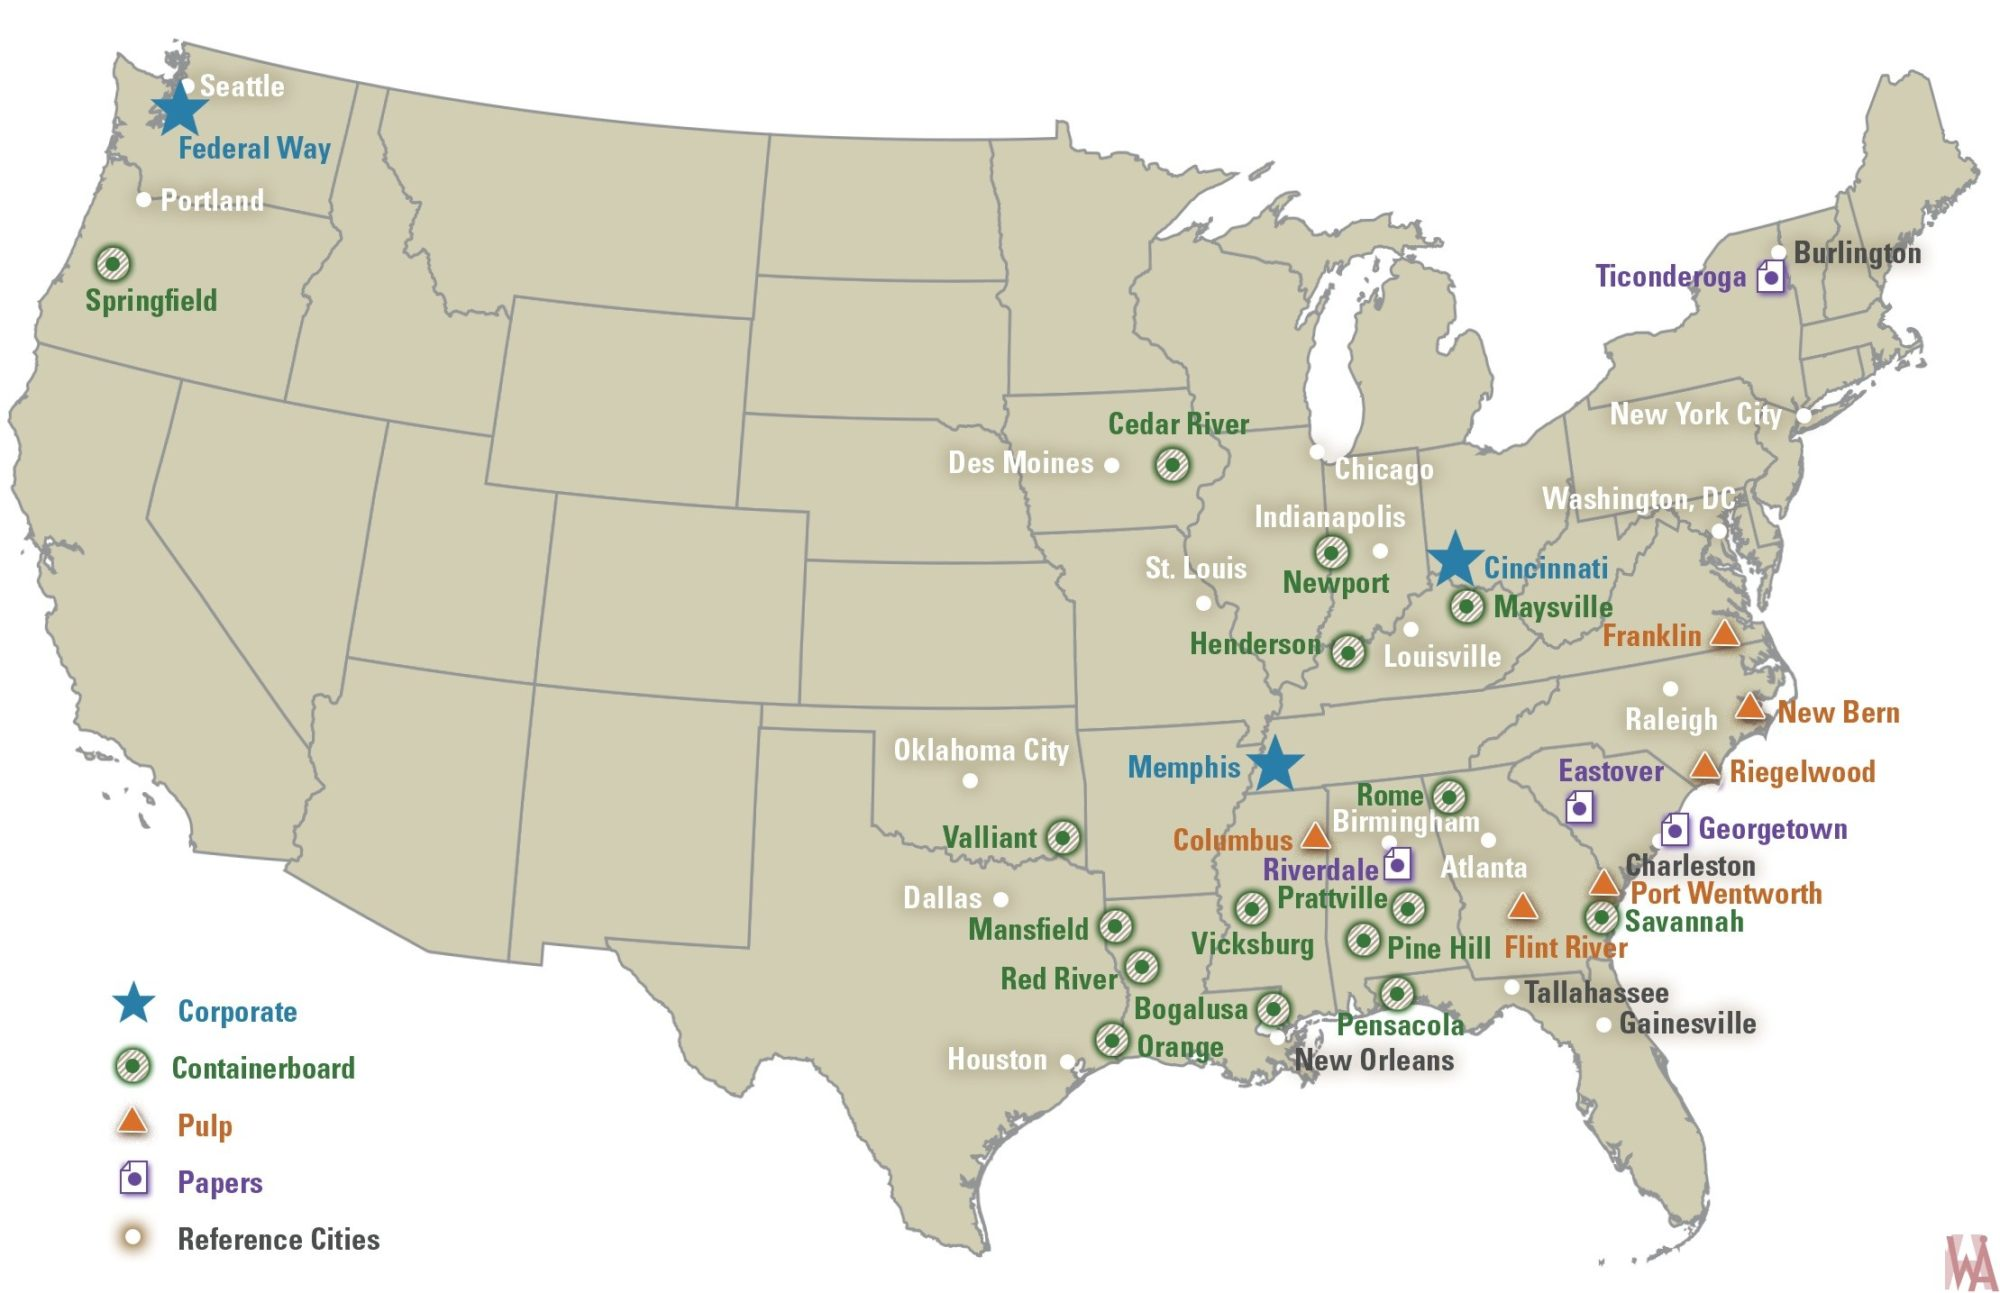 USA great industry commercial cities map